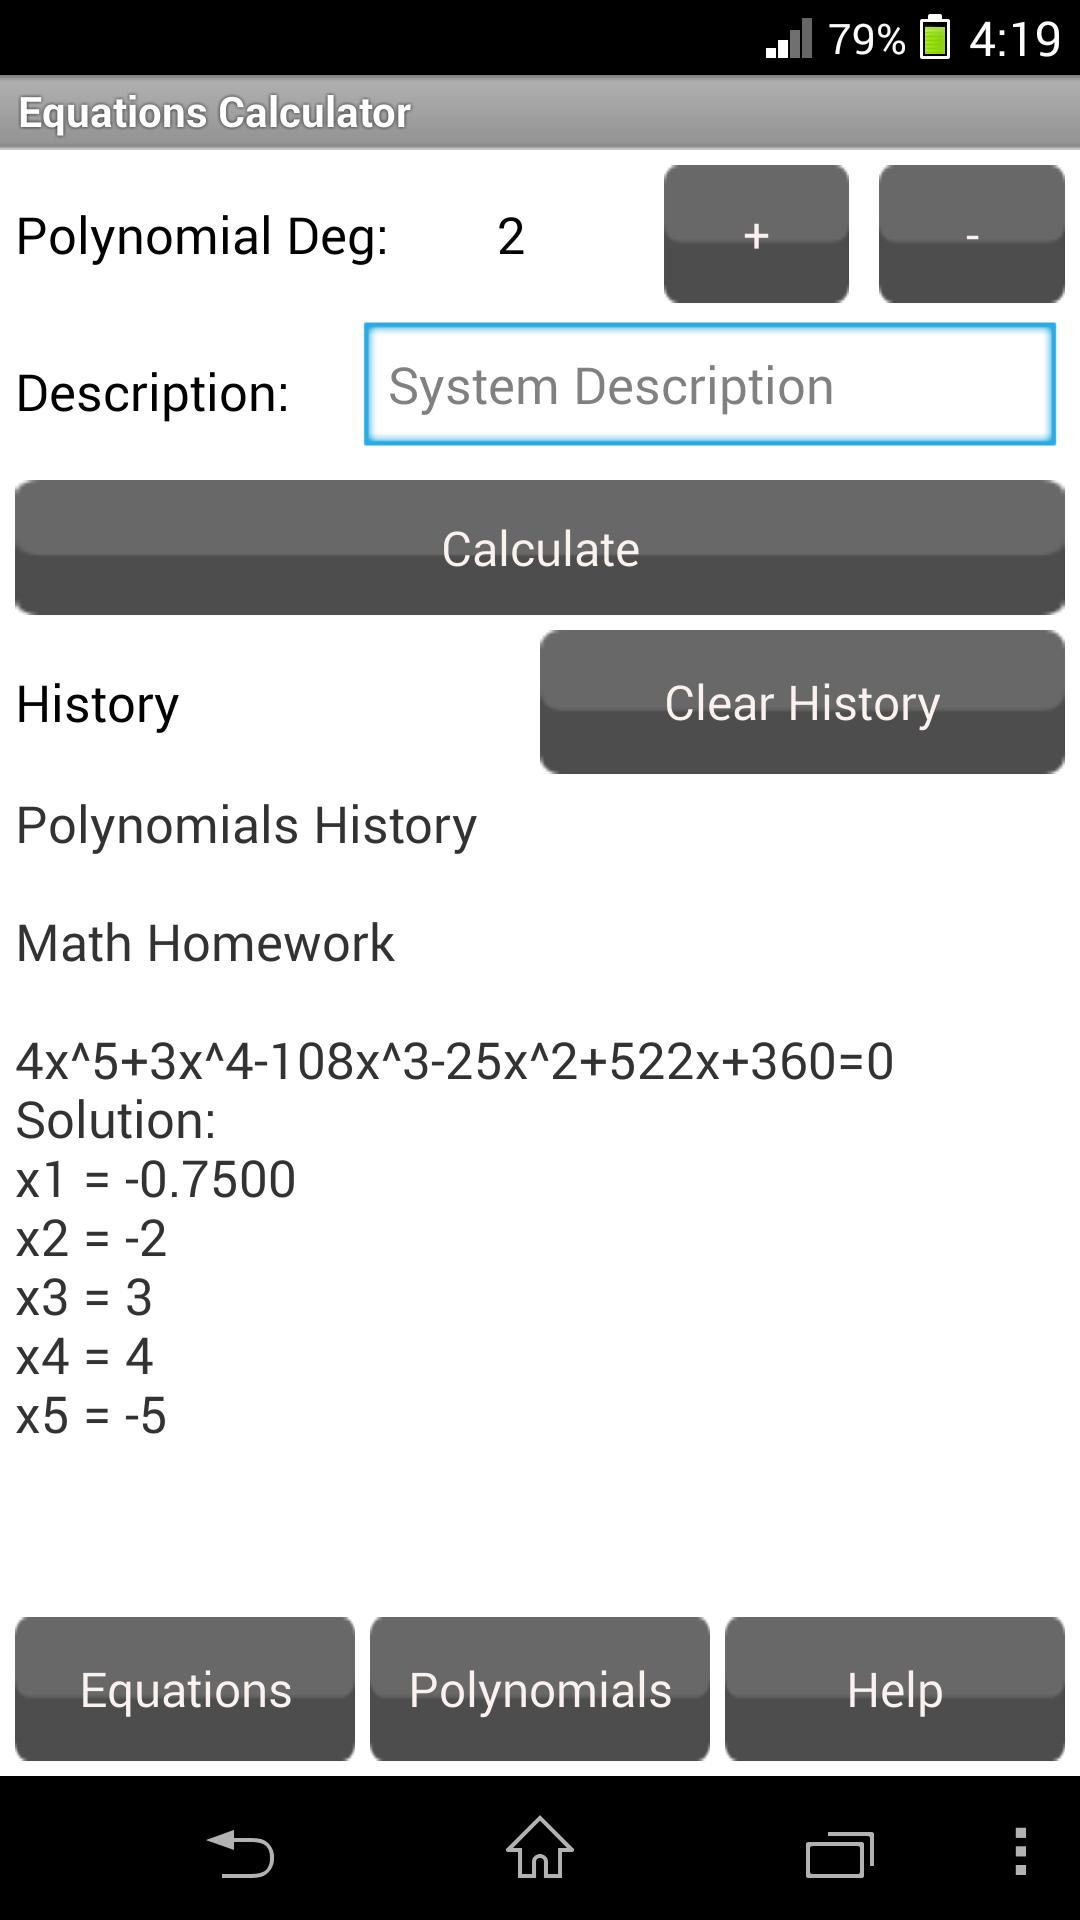 Equations Calculator FreeTrial for Android - APK Download